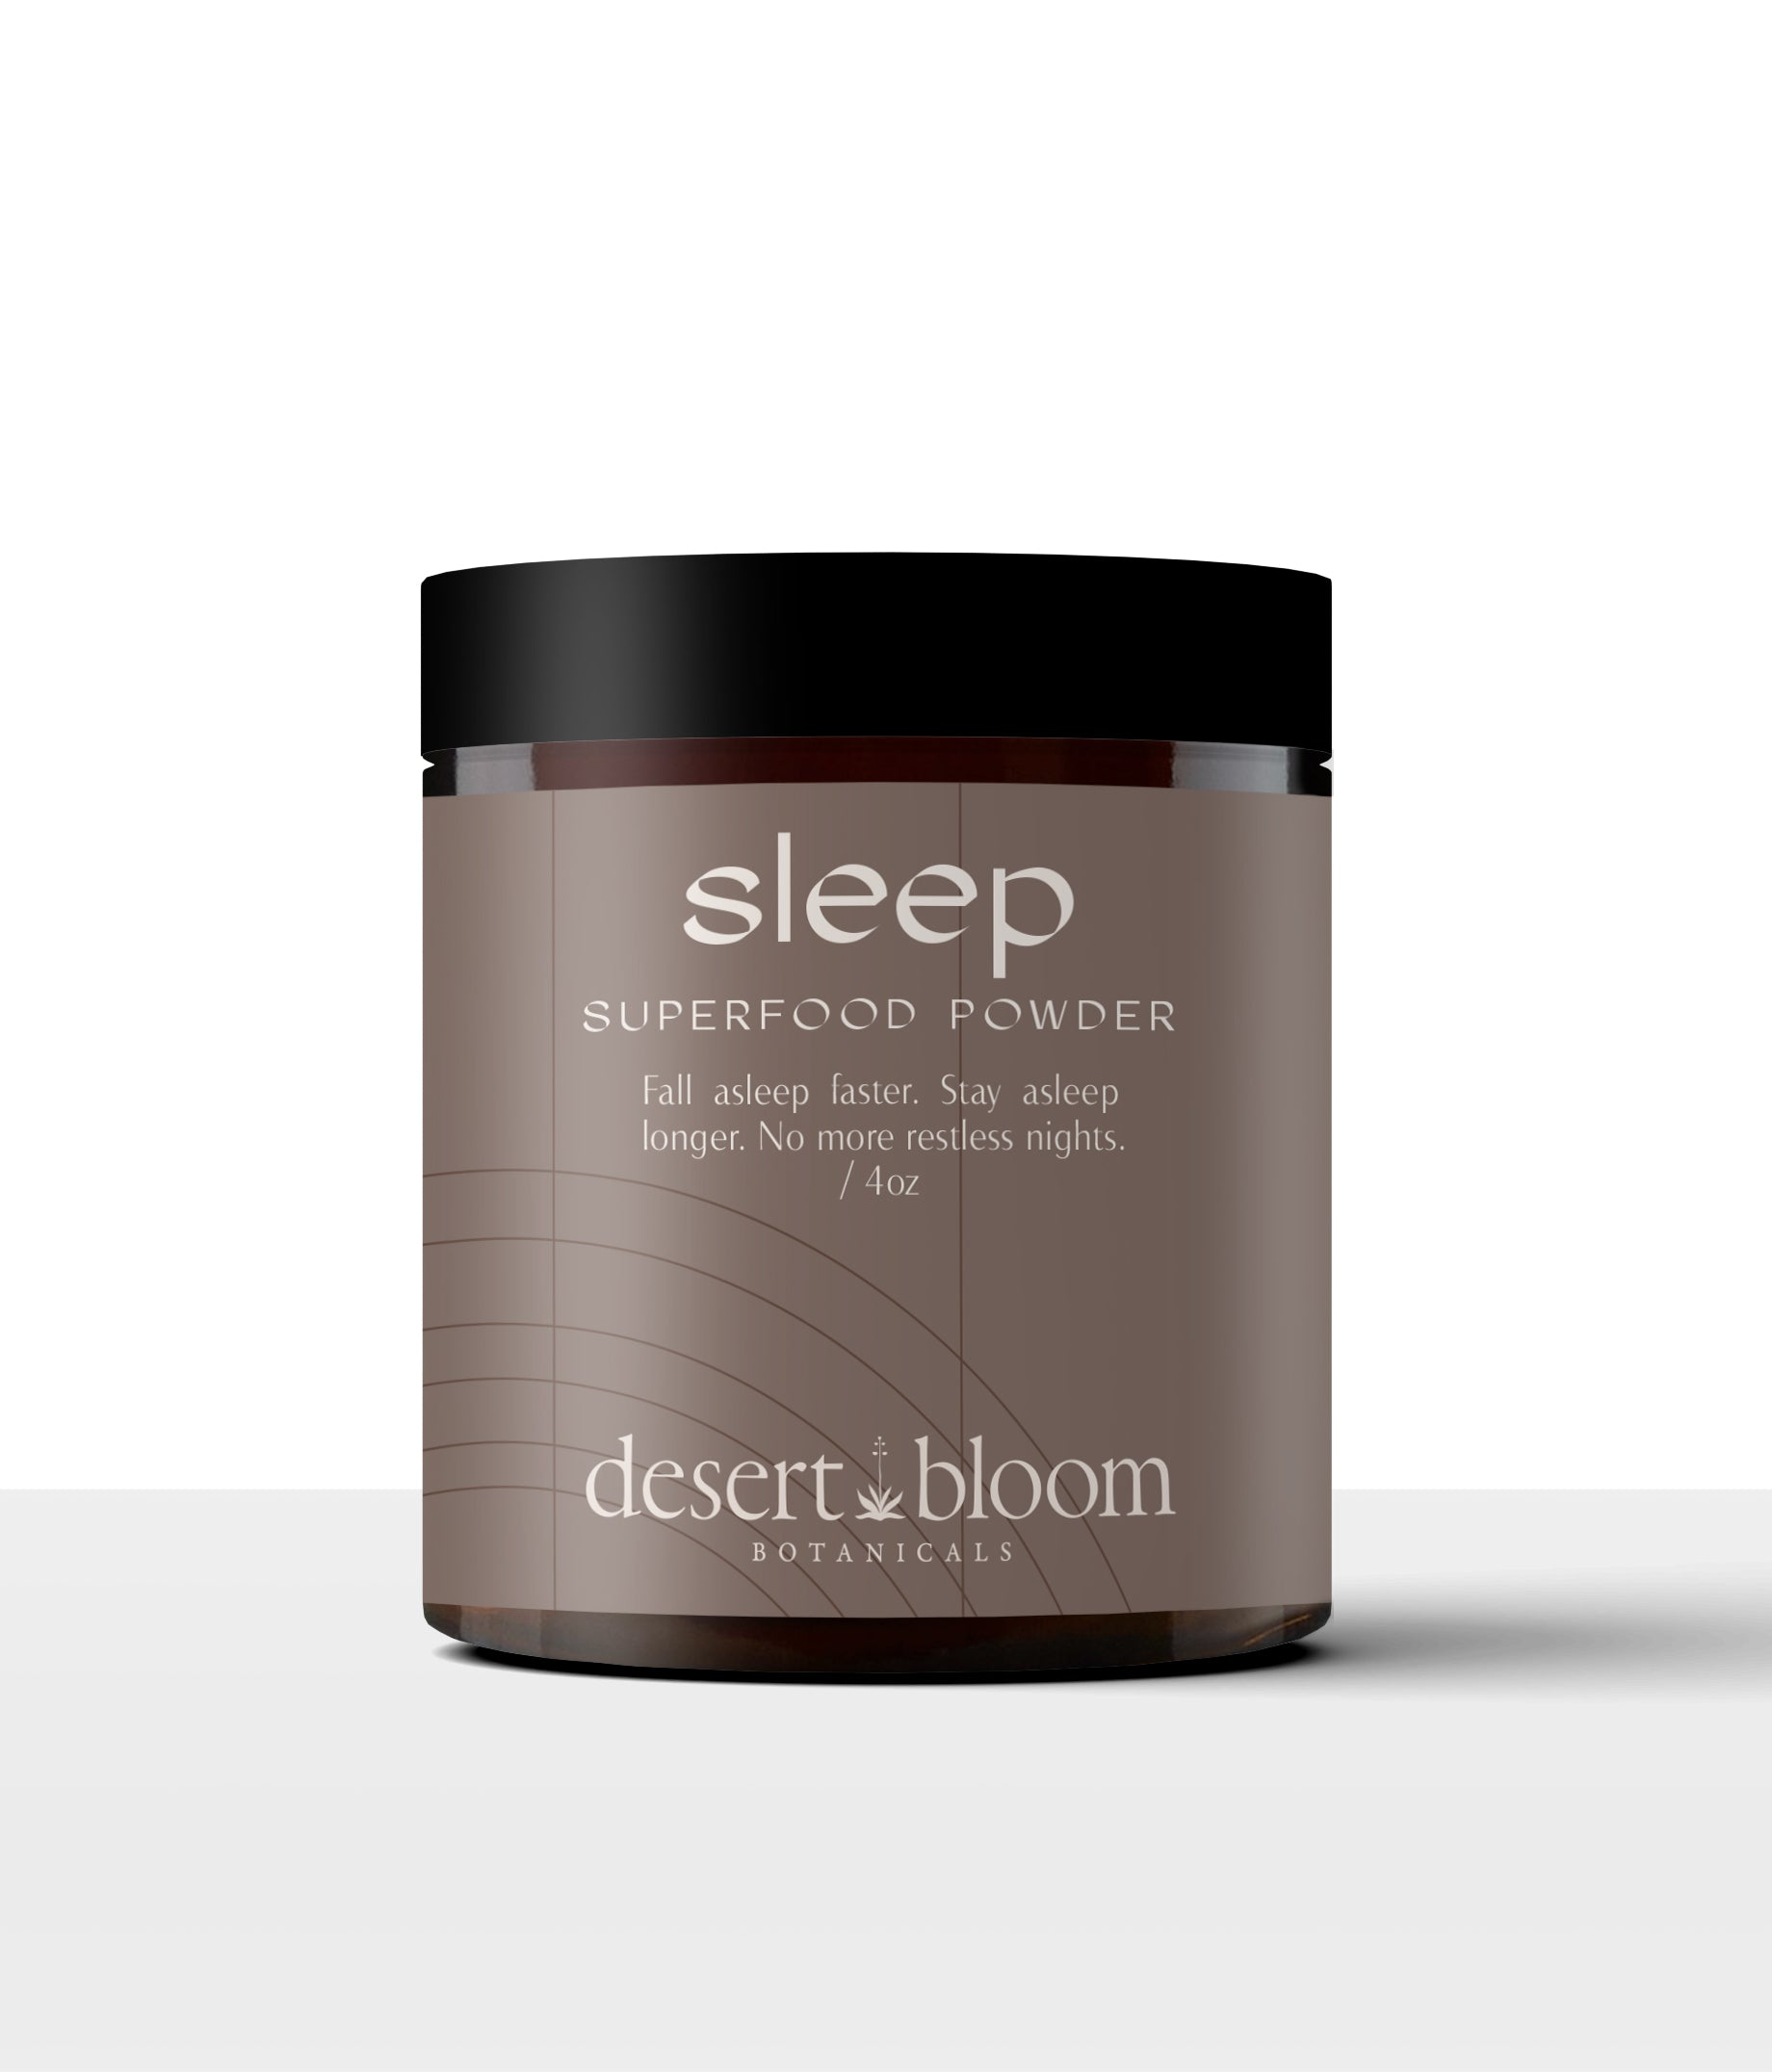 Sleep Superfood Powder - Desert Bloom Botanicals